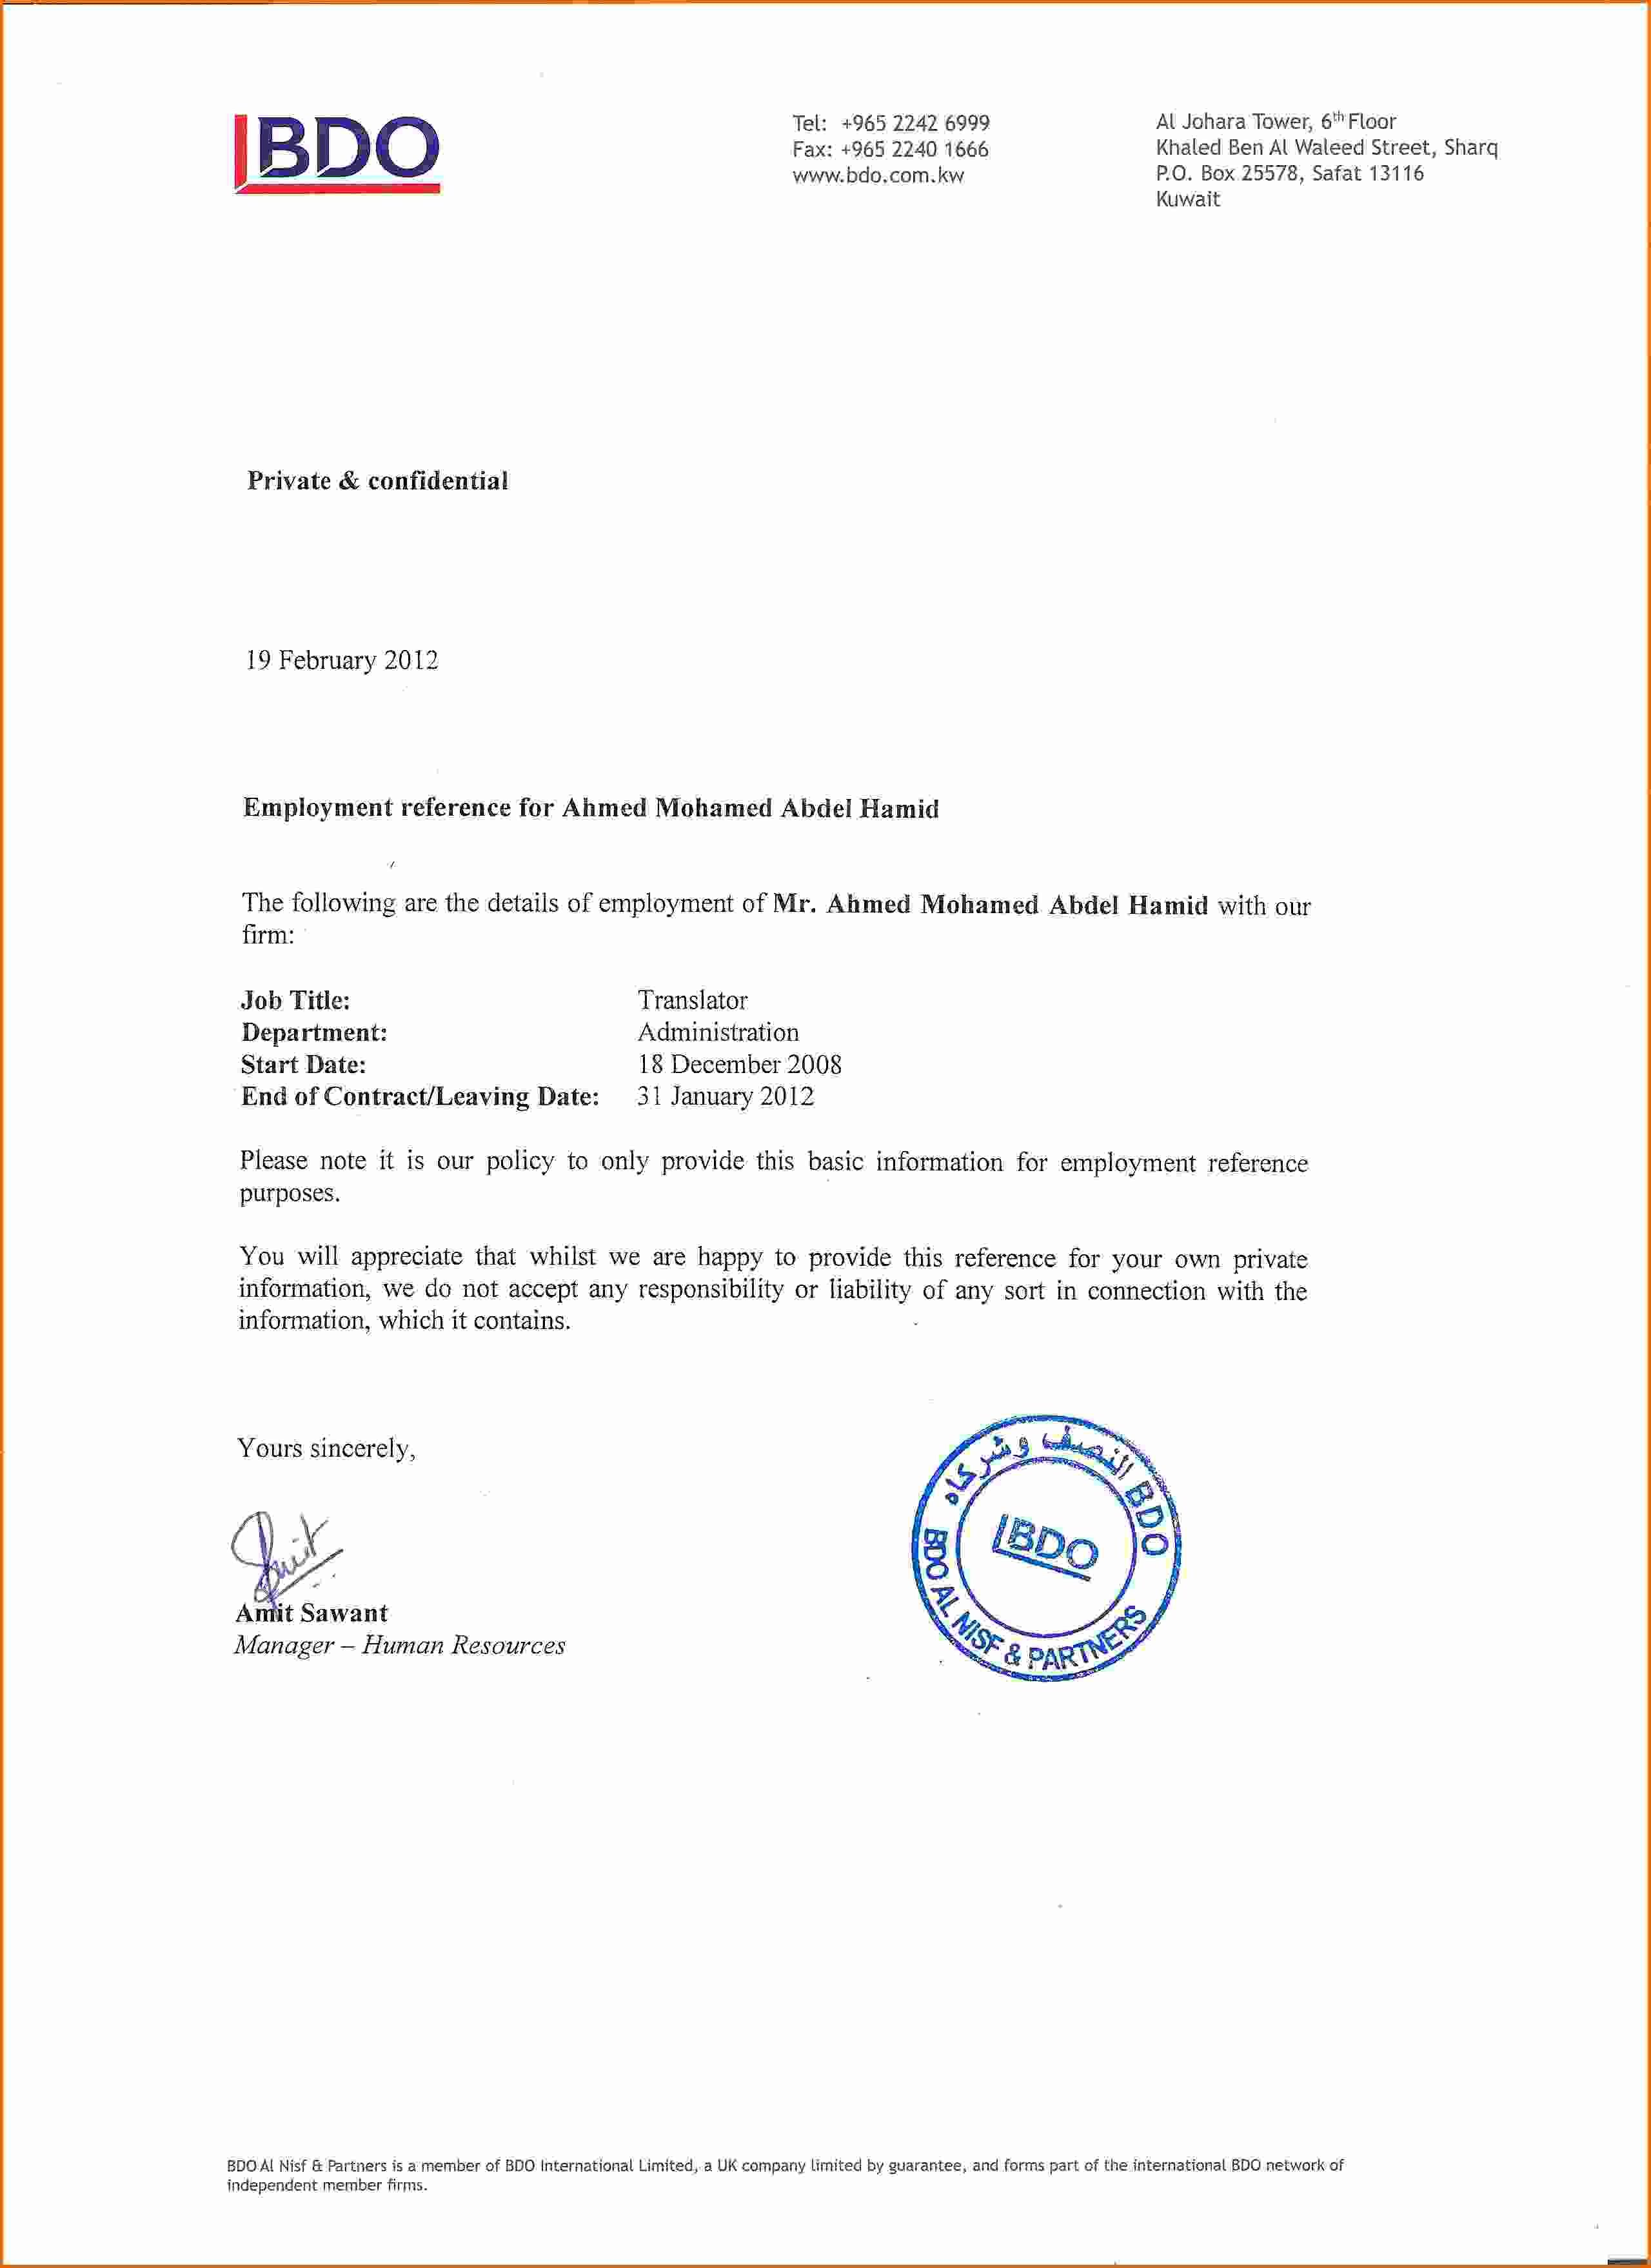 Employment certification letter format executive resume template employment sample certification letter car pictures verification template for excel pdf and word best free home design idea inspiration yelopaper Images